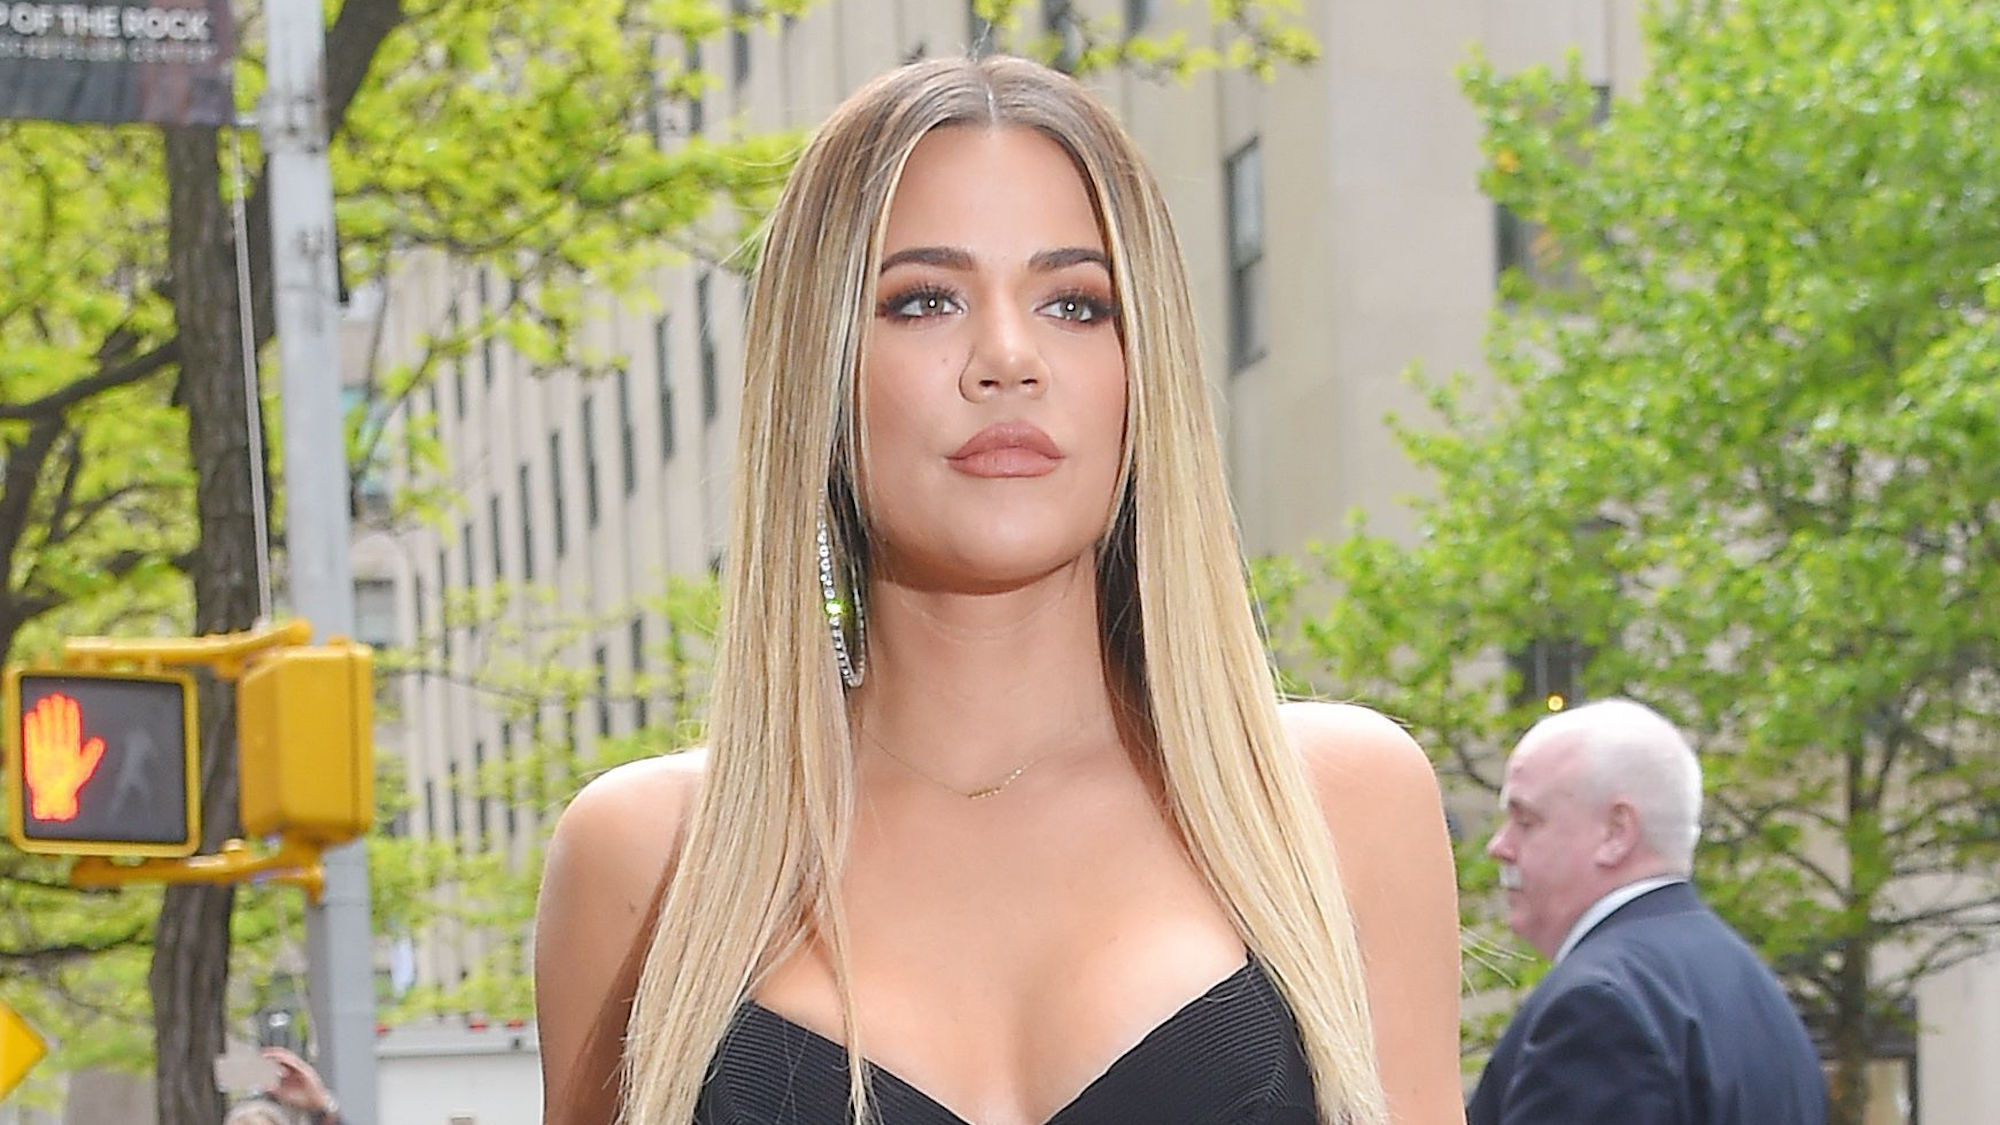 Khloe Kardashian opens up about being forced to lose weight by her family